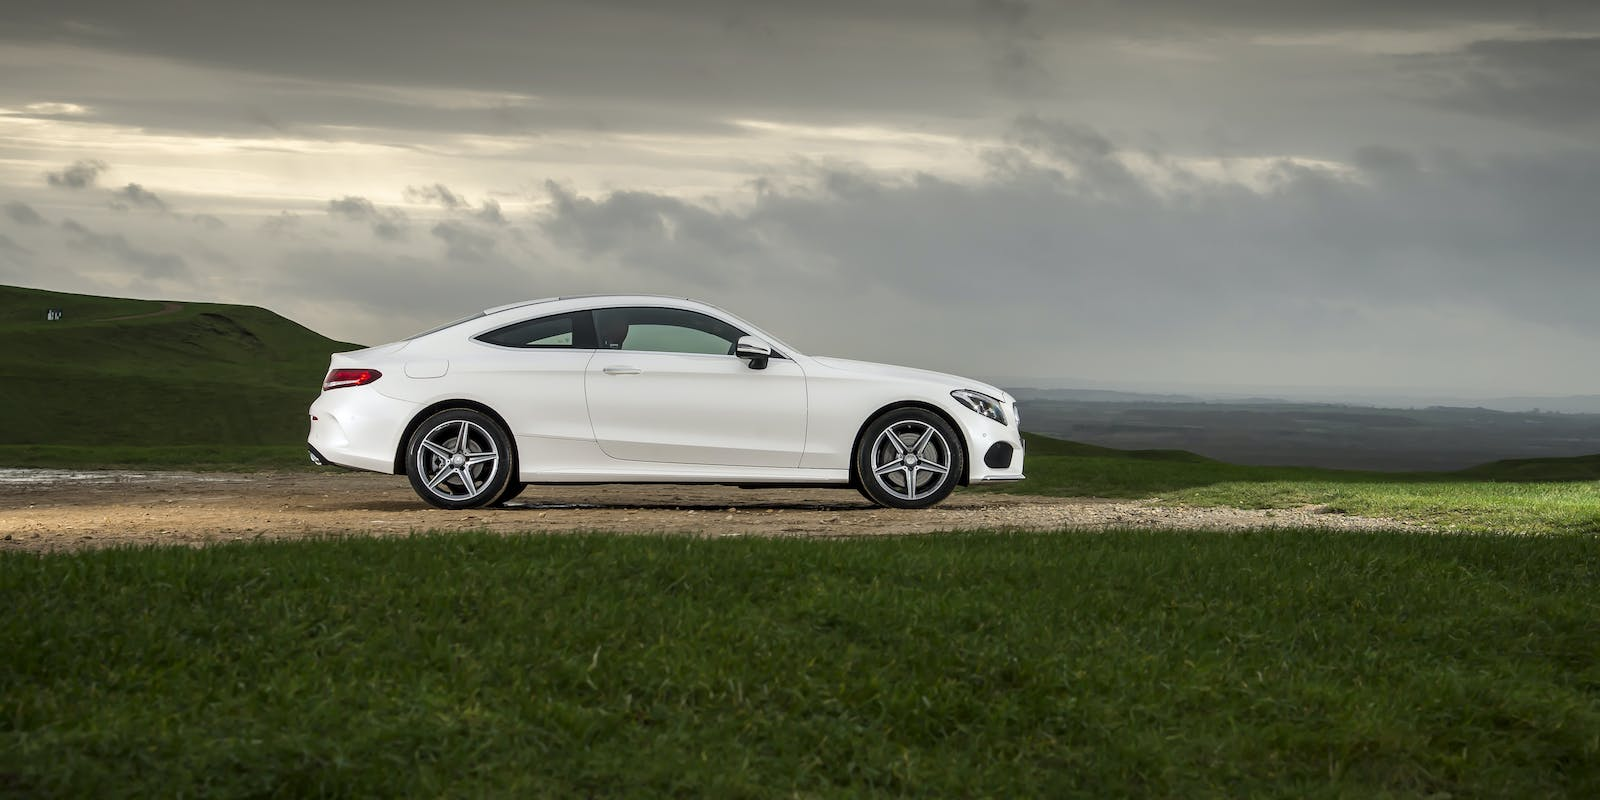 Mercedes c class coupe review carwow - Mercedes c class coupe specifications ...